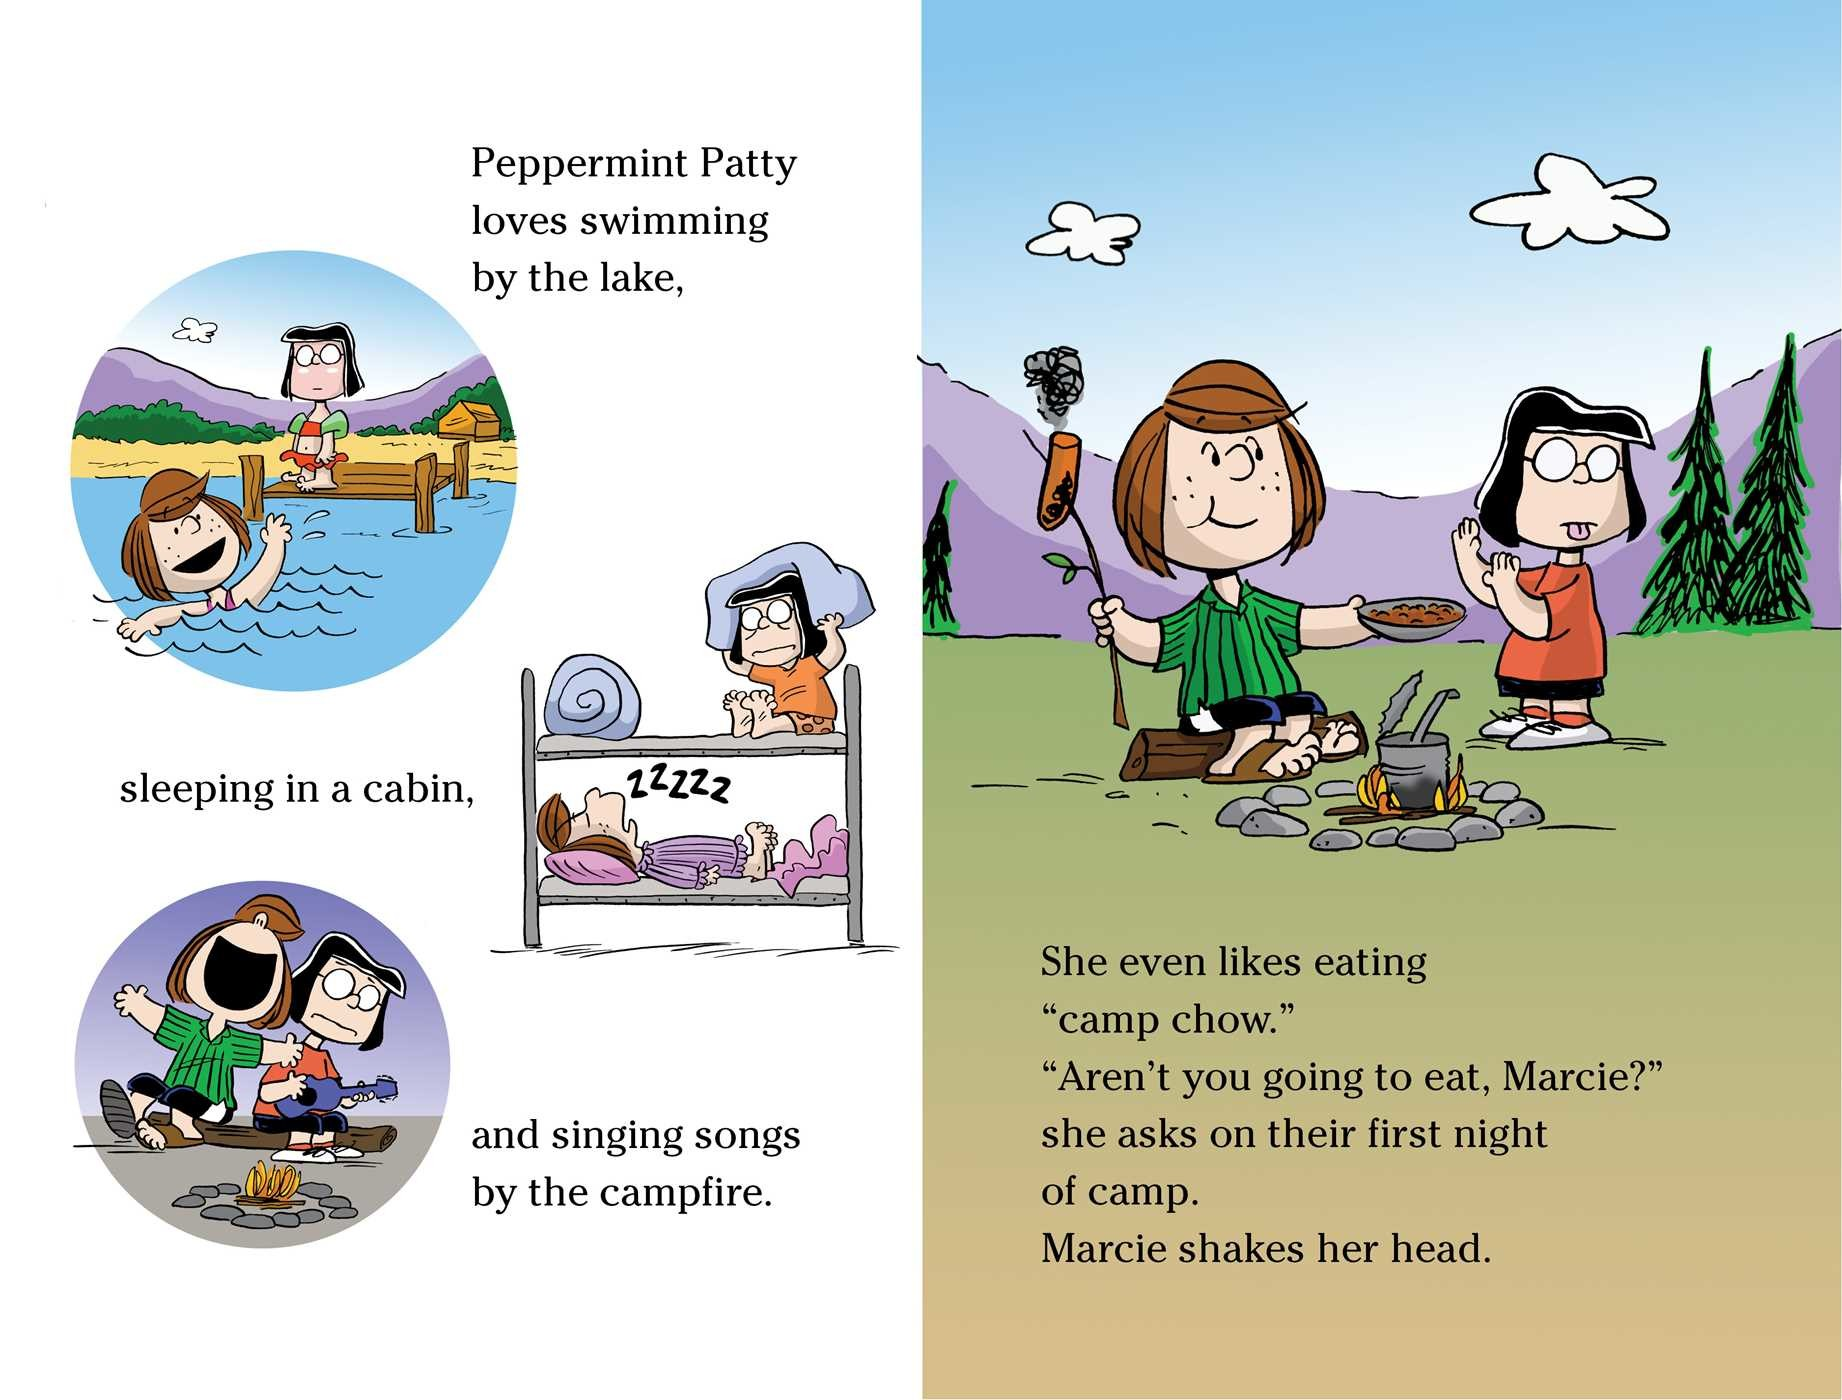 Peppermint patty goes to camp 9781481462624.in01